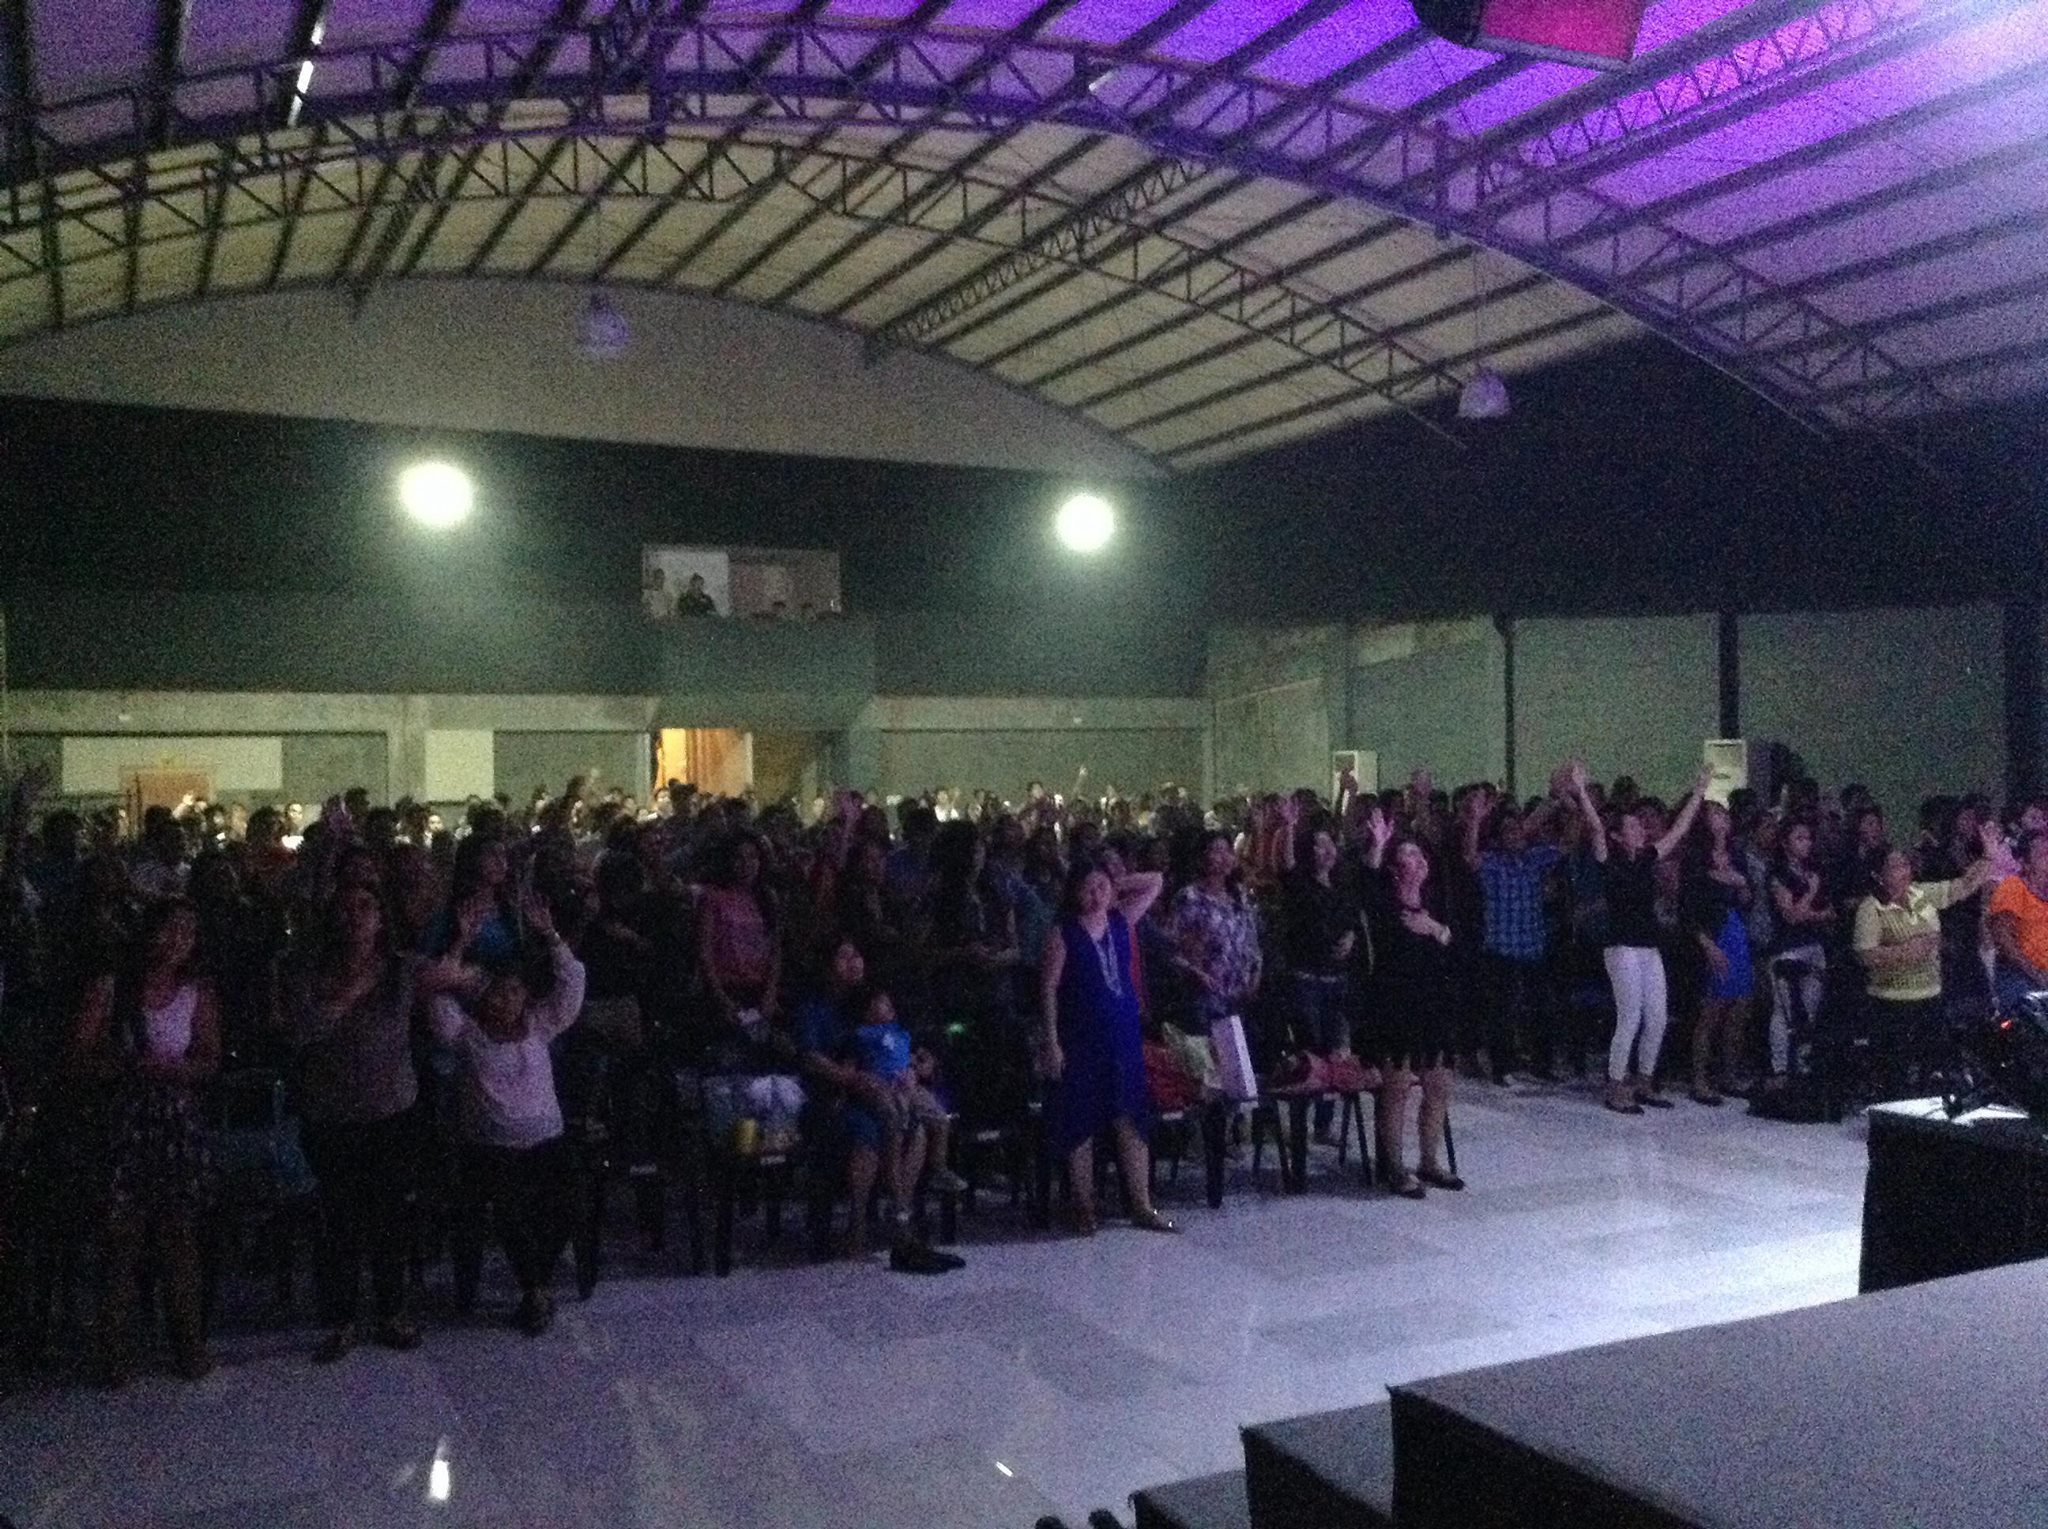 Pastor Herley says both morning services at CLC-Davao were FILLED with people & the Presence of the Lord!  (Their new building seats about double their old location & still they're already packed!)